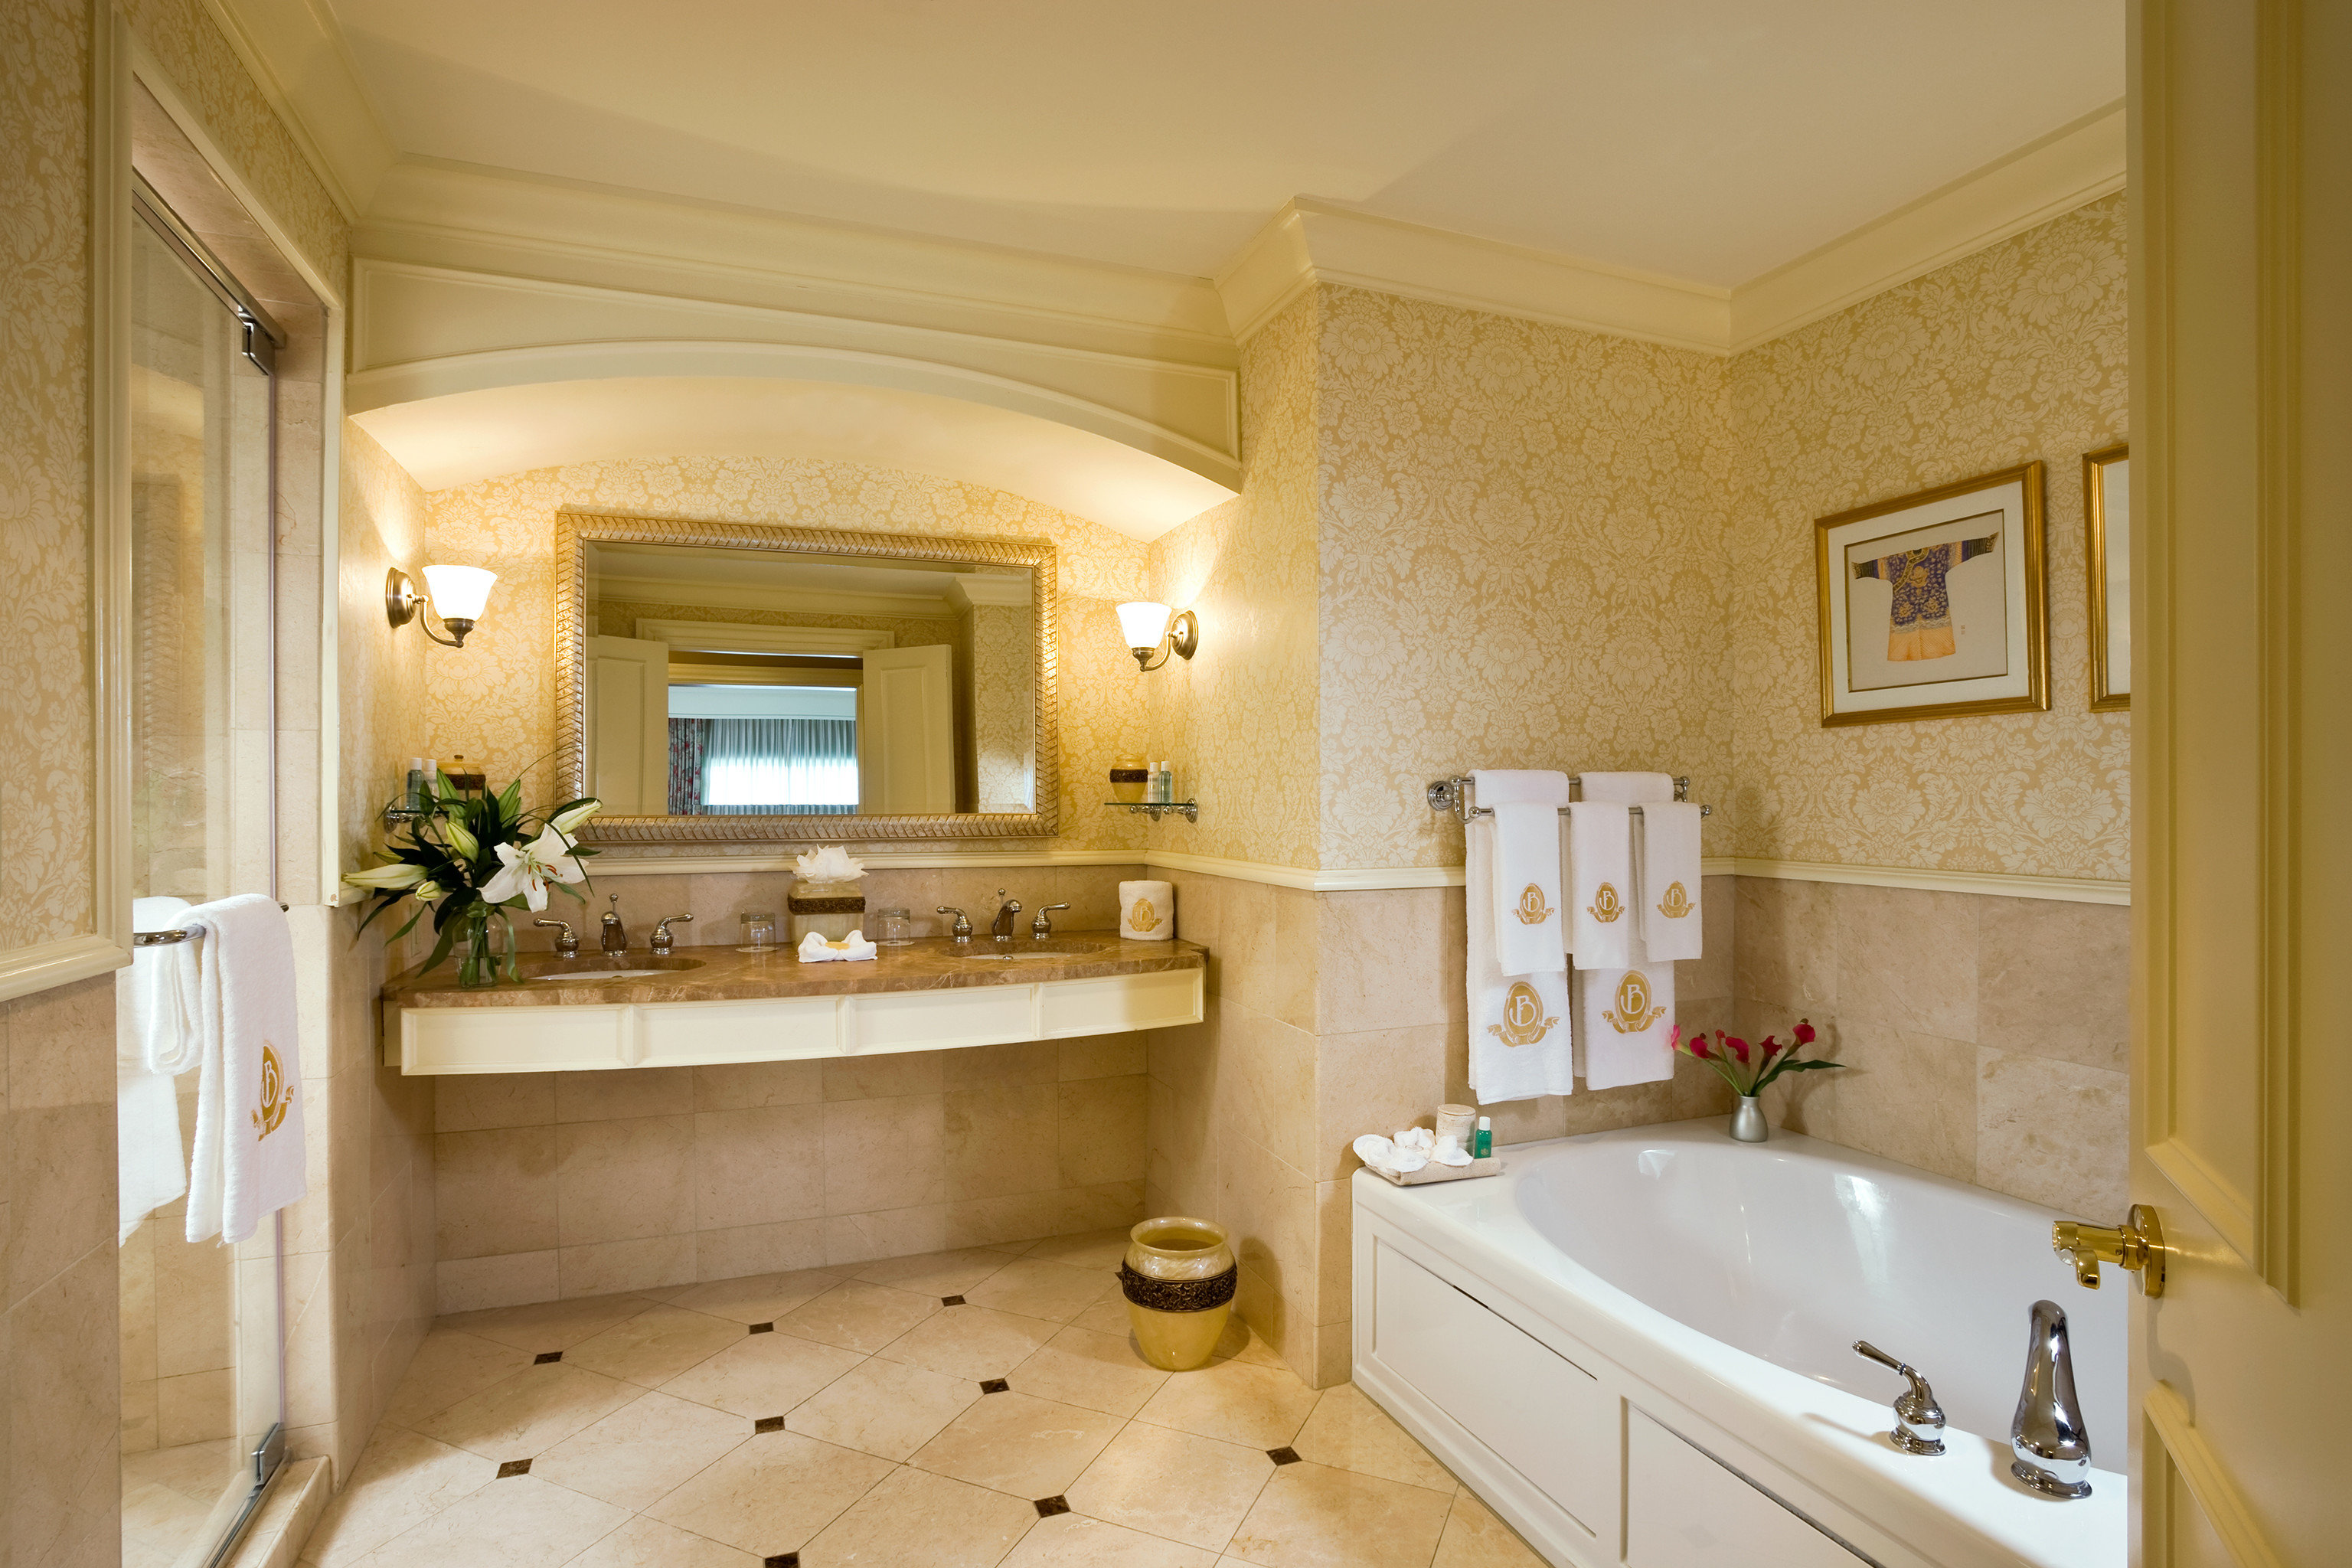 Bath Classic Luxury bathroom property home sink hardwood mansion Suite cottage cabinetry tub flooring bathtub tan